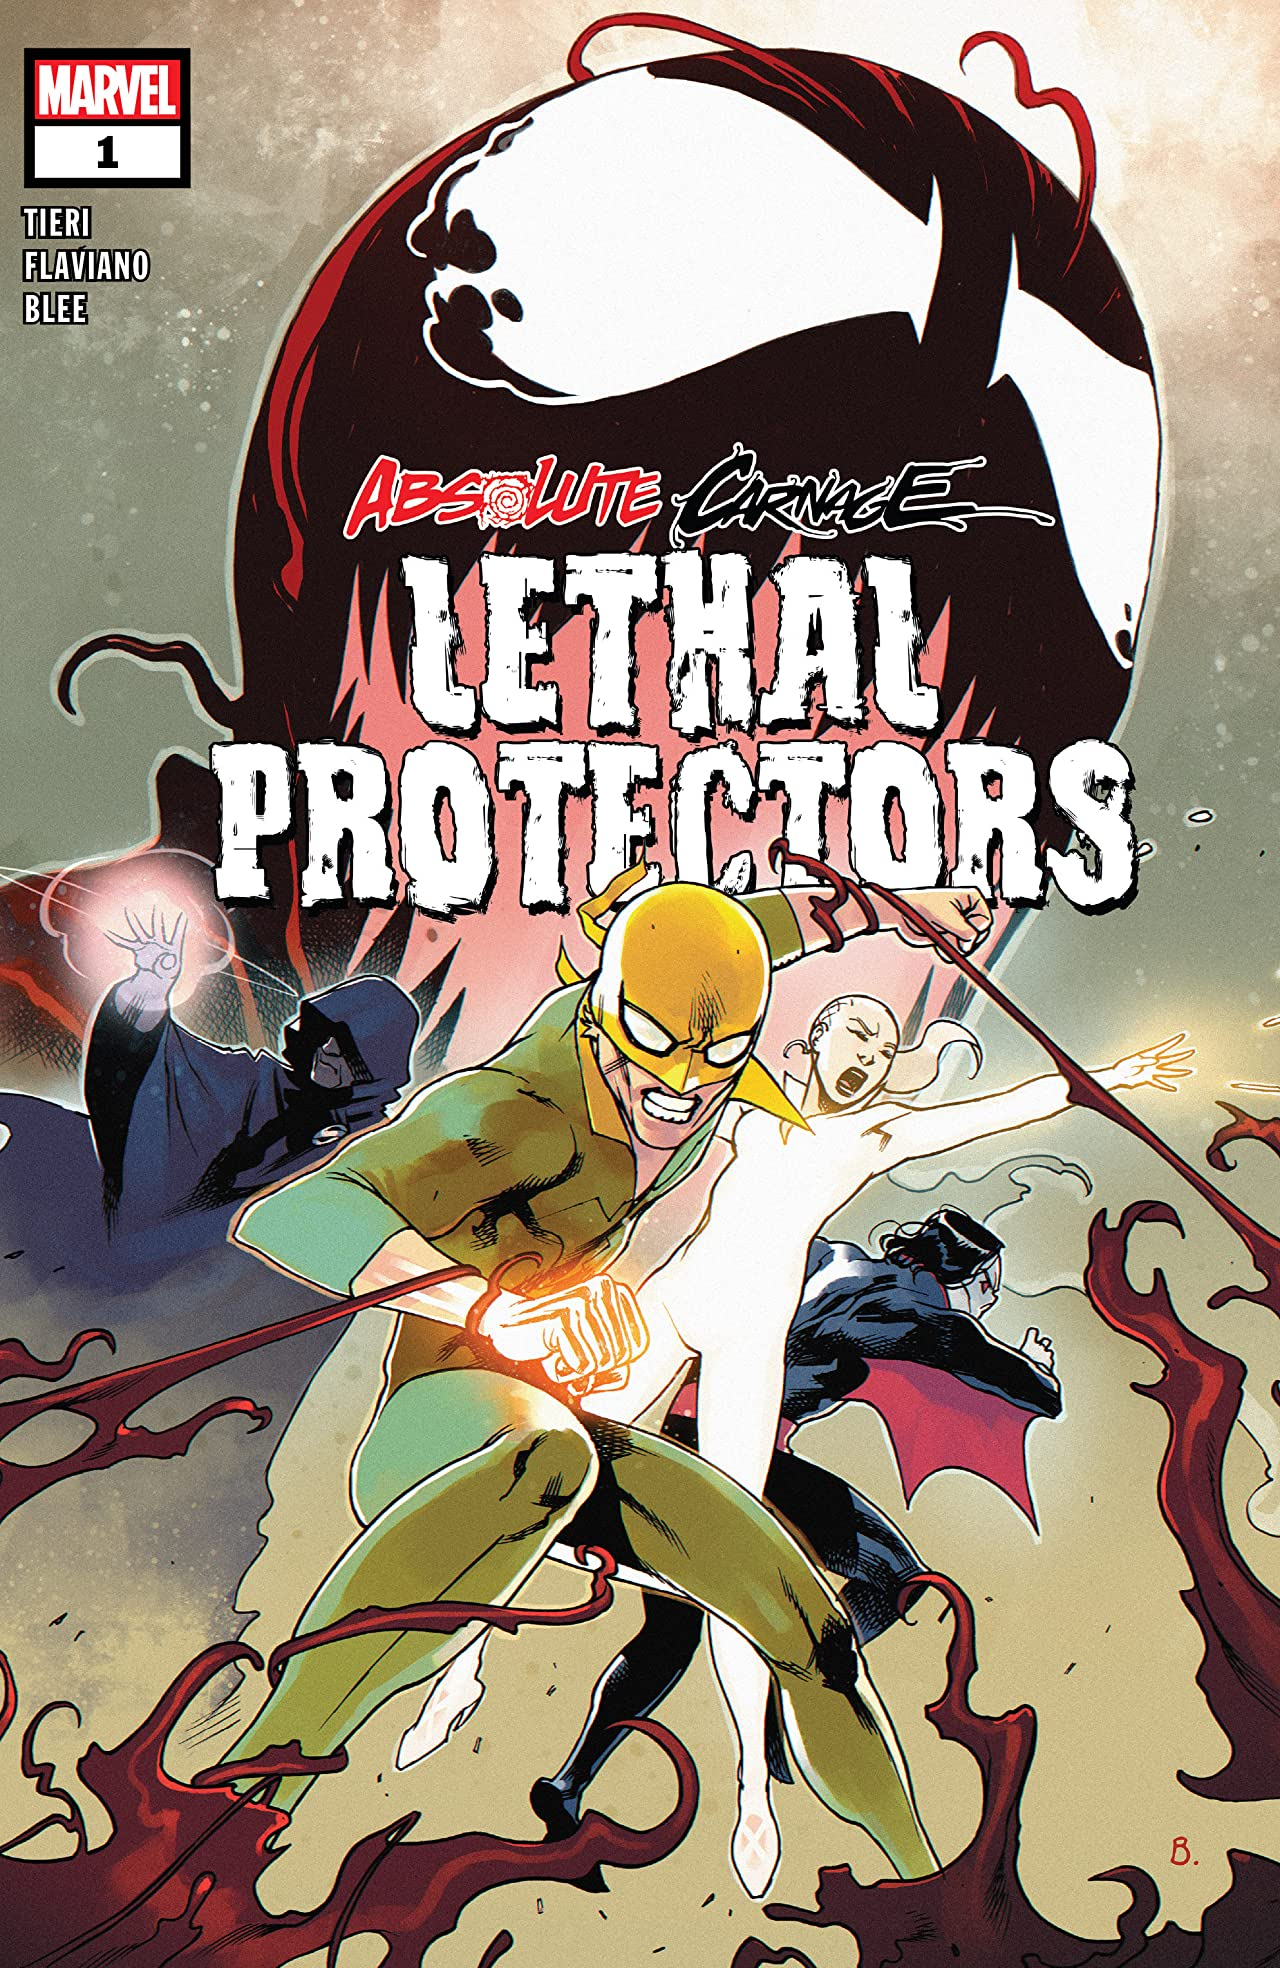 Absolute Carnage: Lethal Protectors (2019) #1 (of 3)